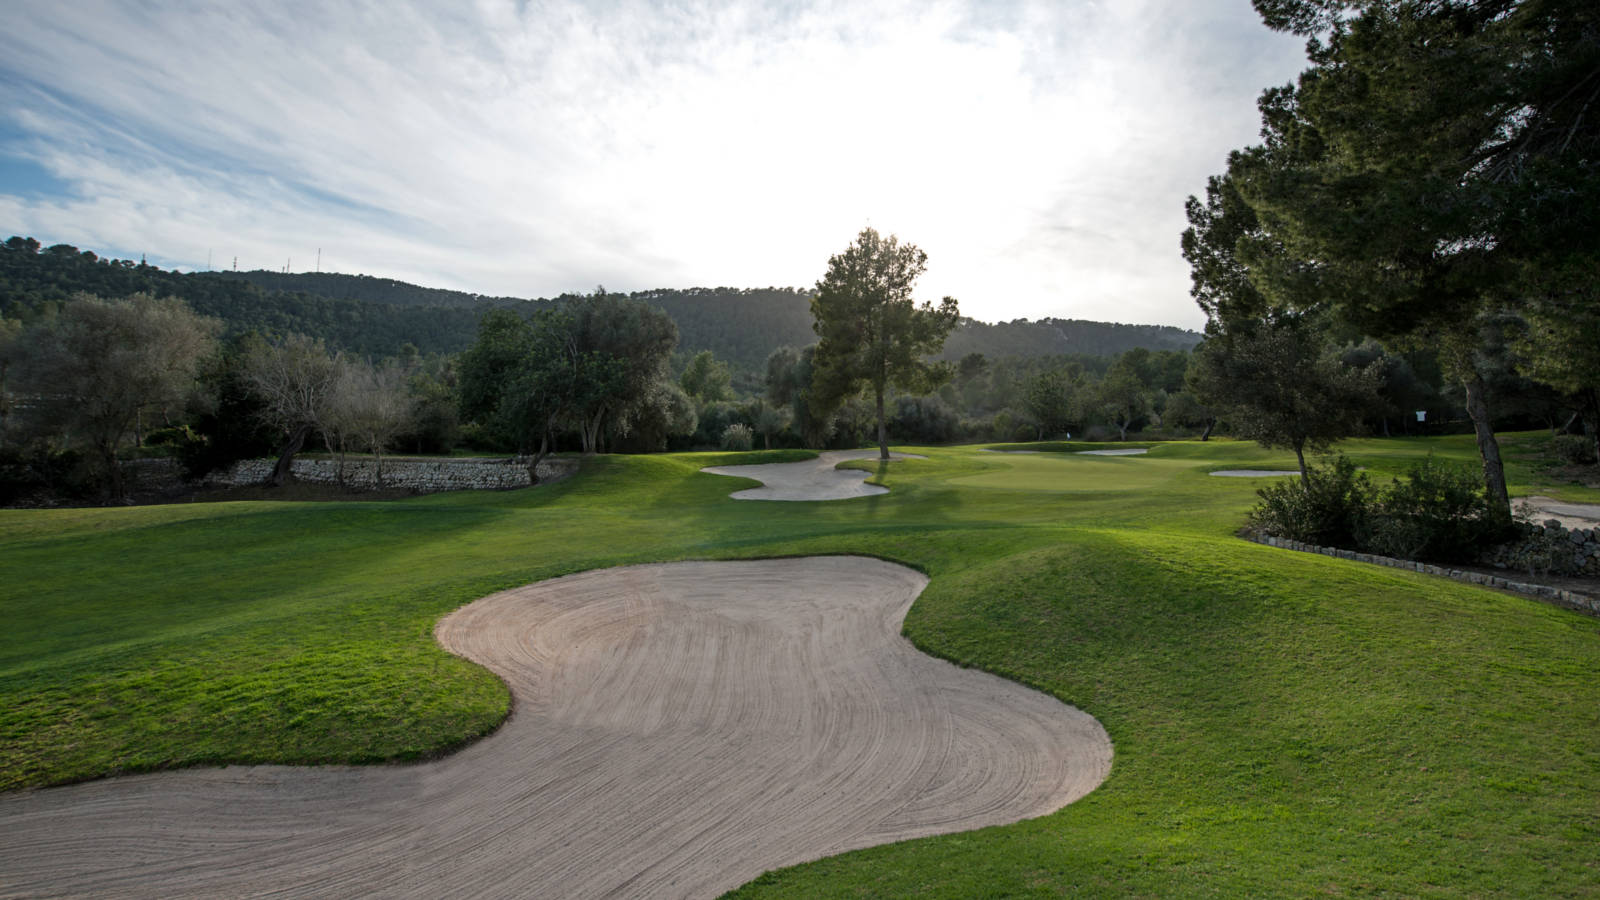 Son Muntaner golf course at